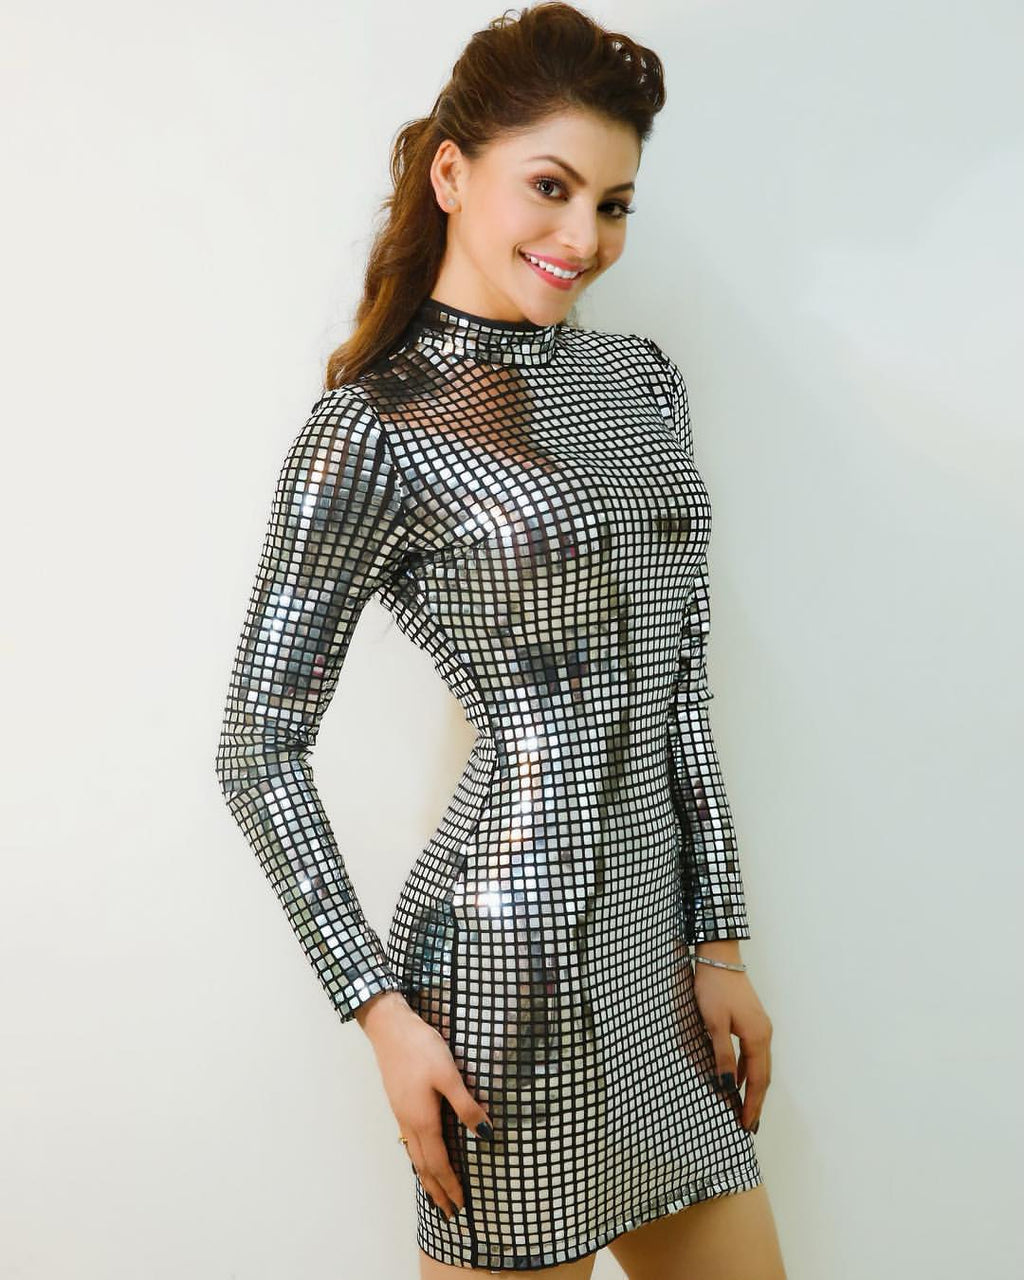 Diva - Silver Mirror Mini Dress